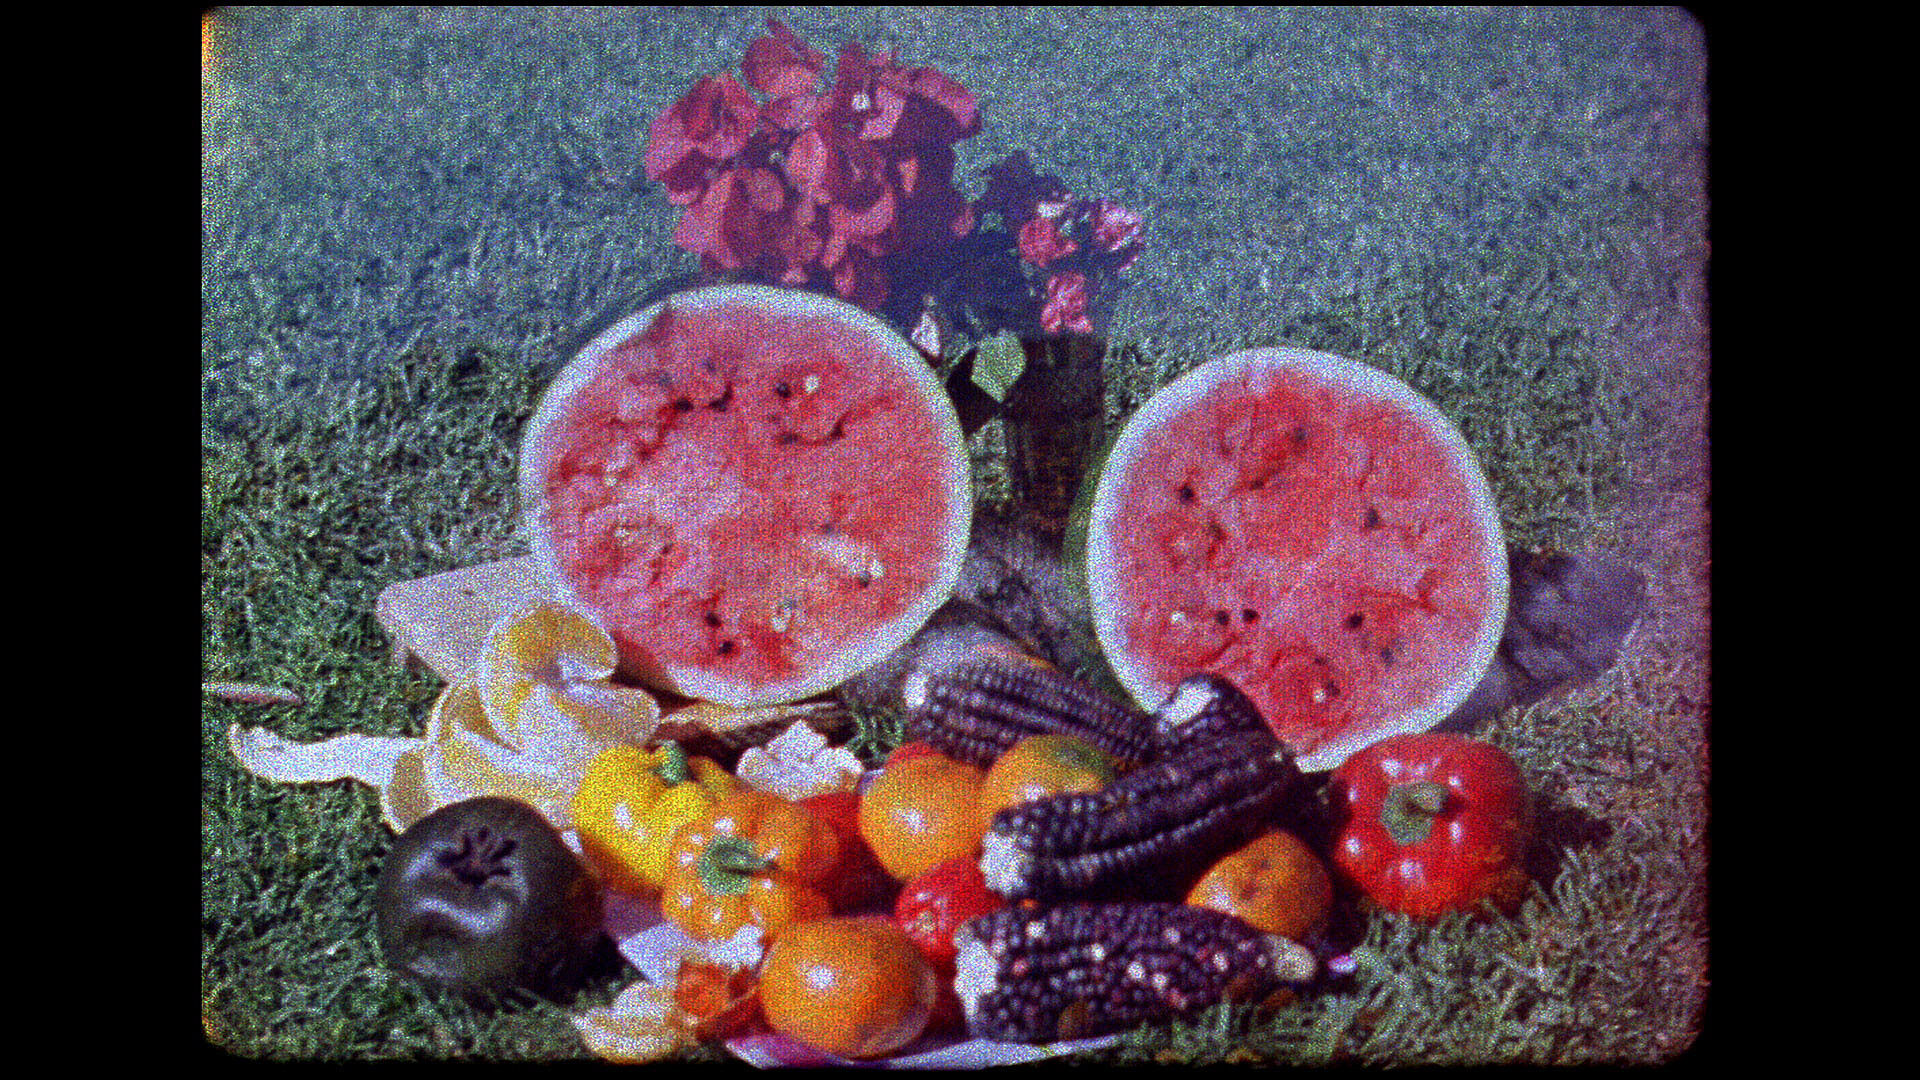 A grainy film image depicting a large array of fruits displayed on a lawn.